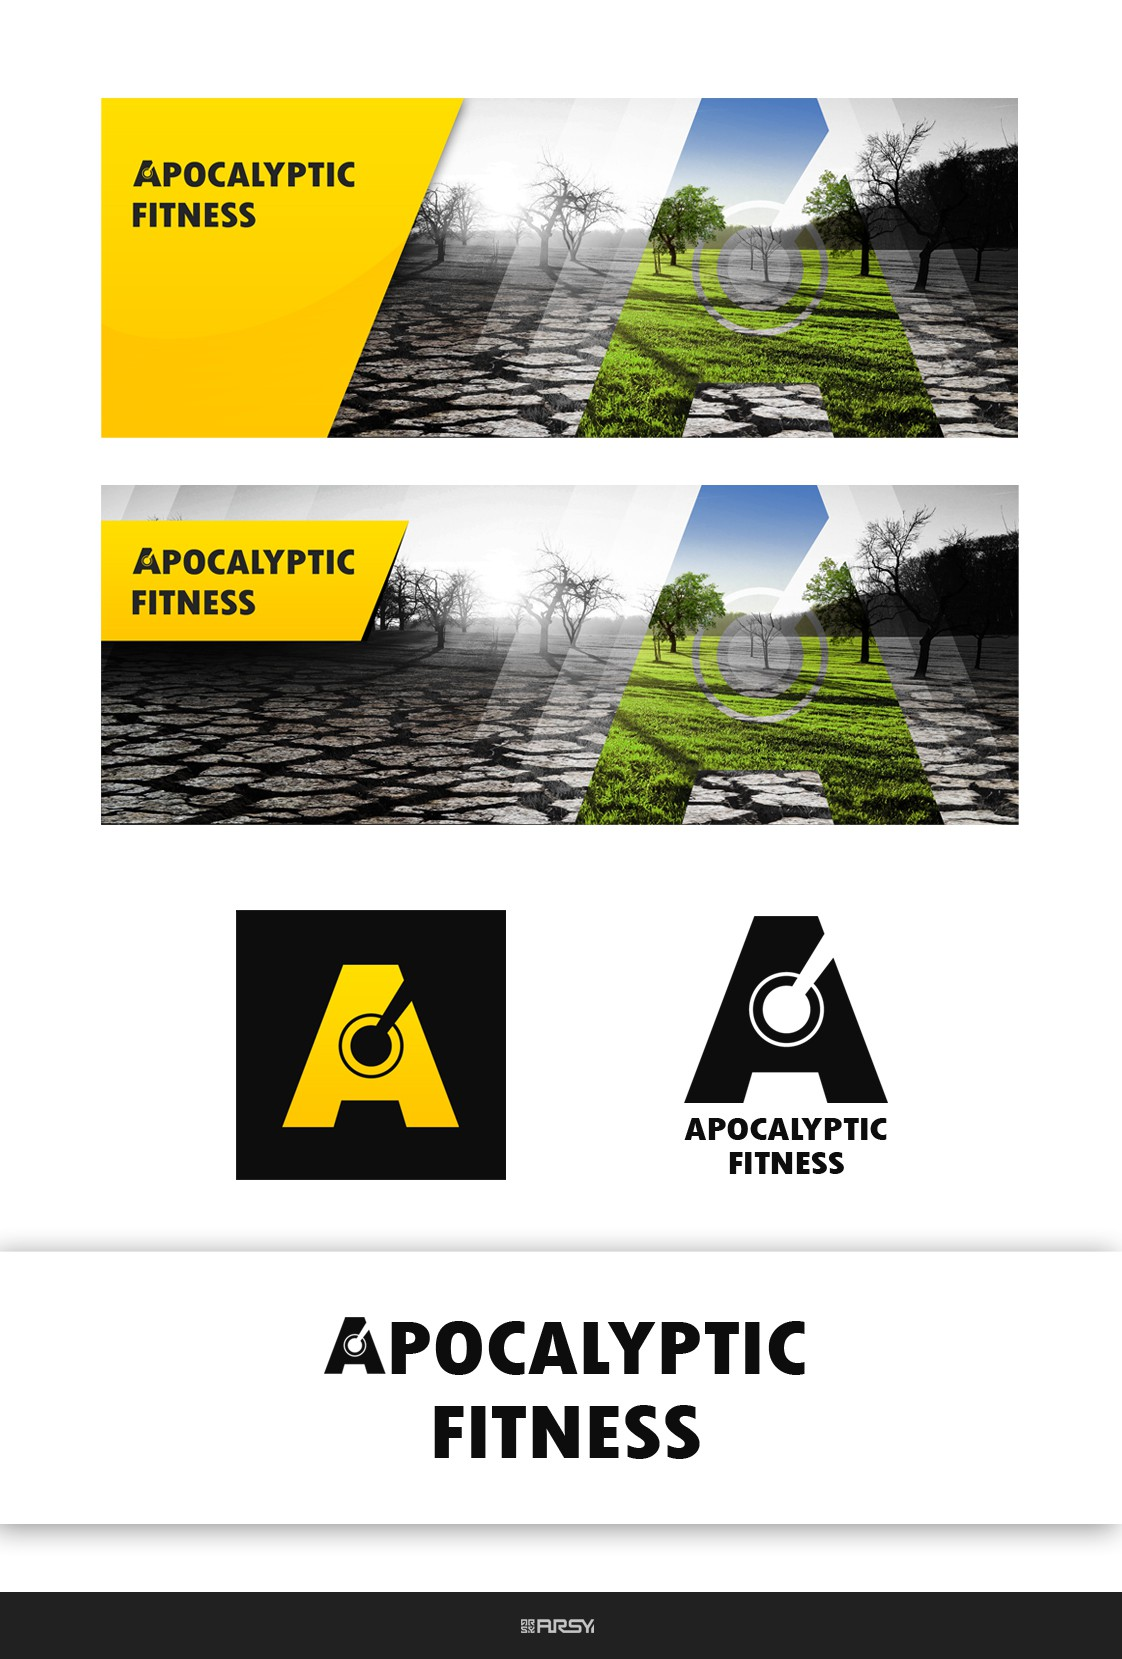 Create inspiration to get fit enough to survive the apocalypse